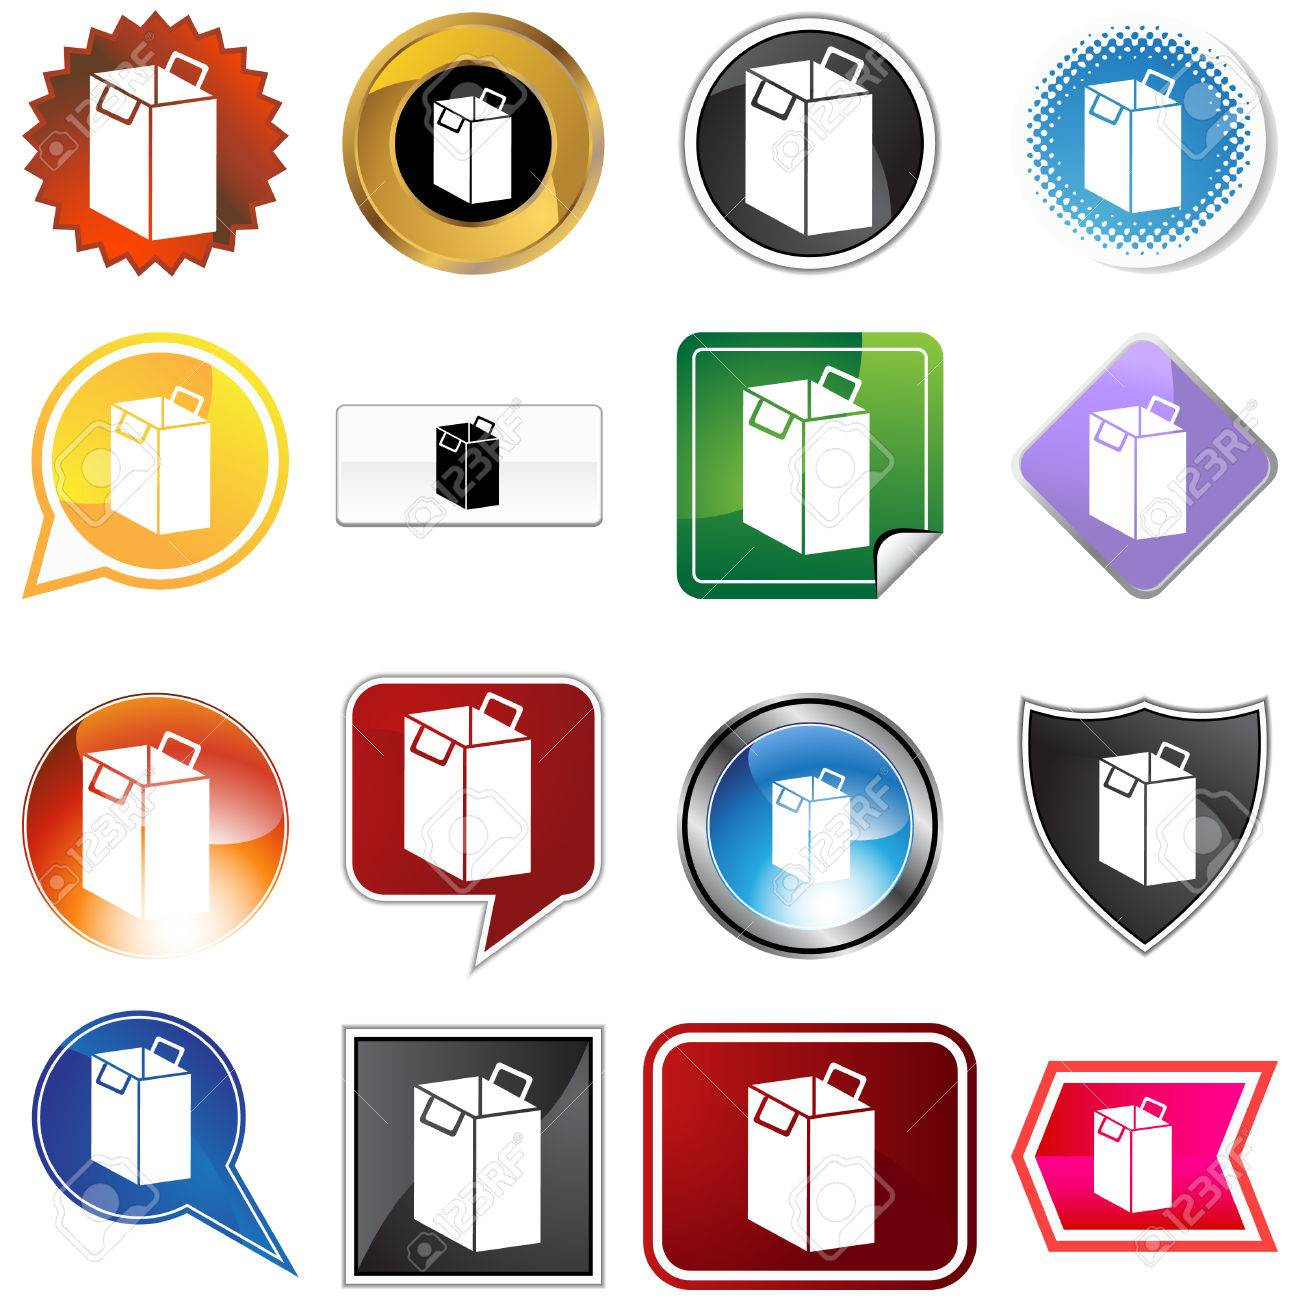 Shopping bag icon set isolated on a white background. Stock Vector - 5918874